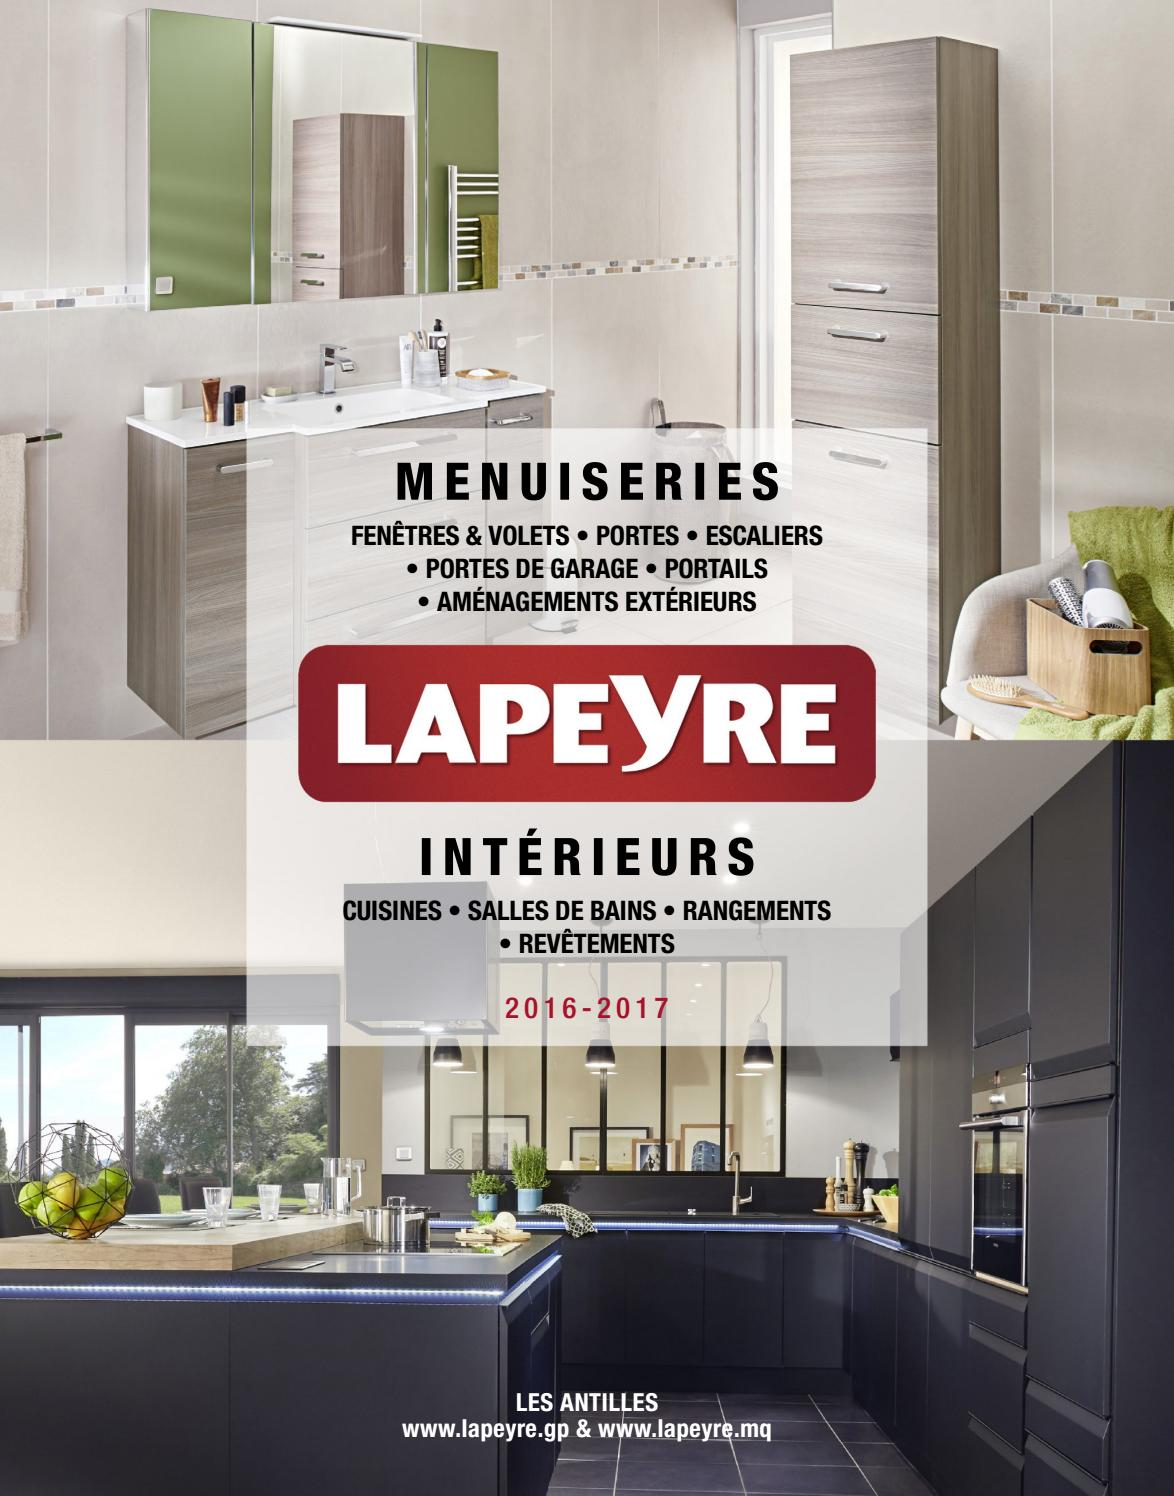 Castorama Limoges Catalogue Lapeyre 2016 2017 By Momentum Média Issuu